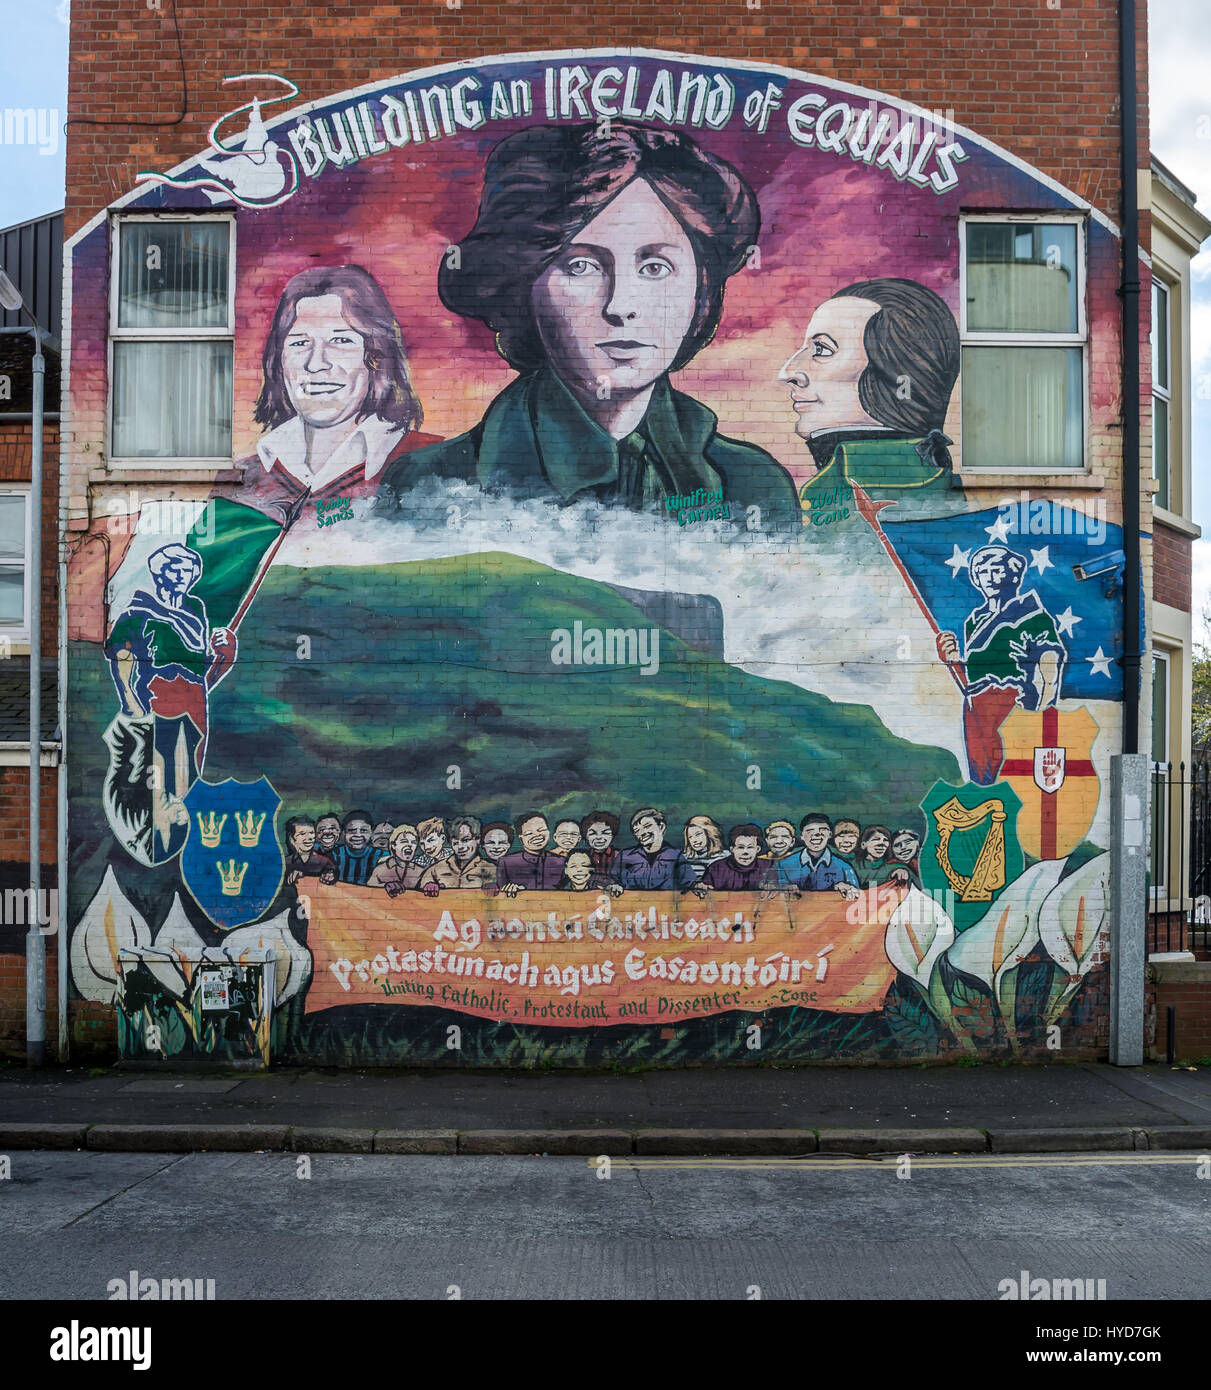 Building an Ireland of Equals mural in North Belfast - Stock Image